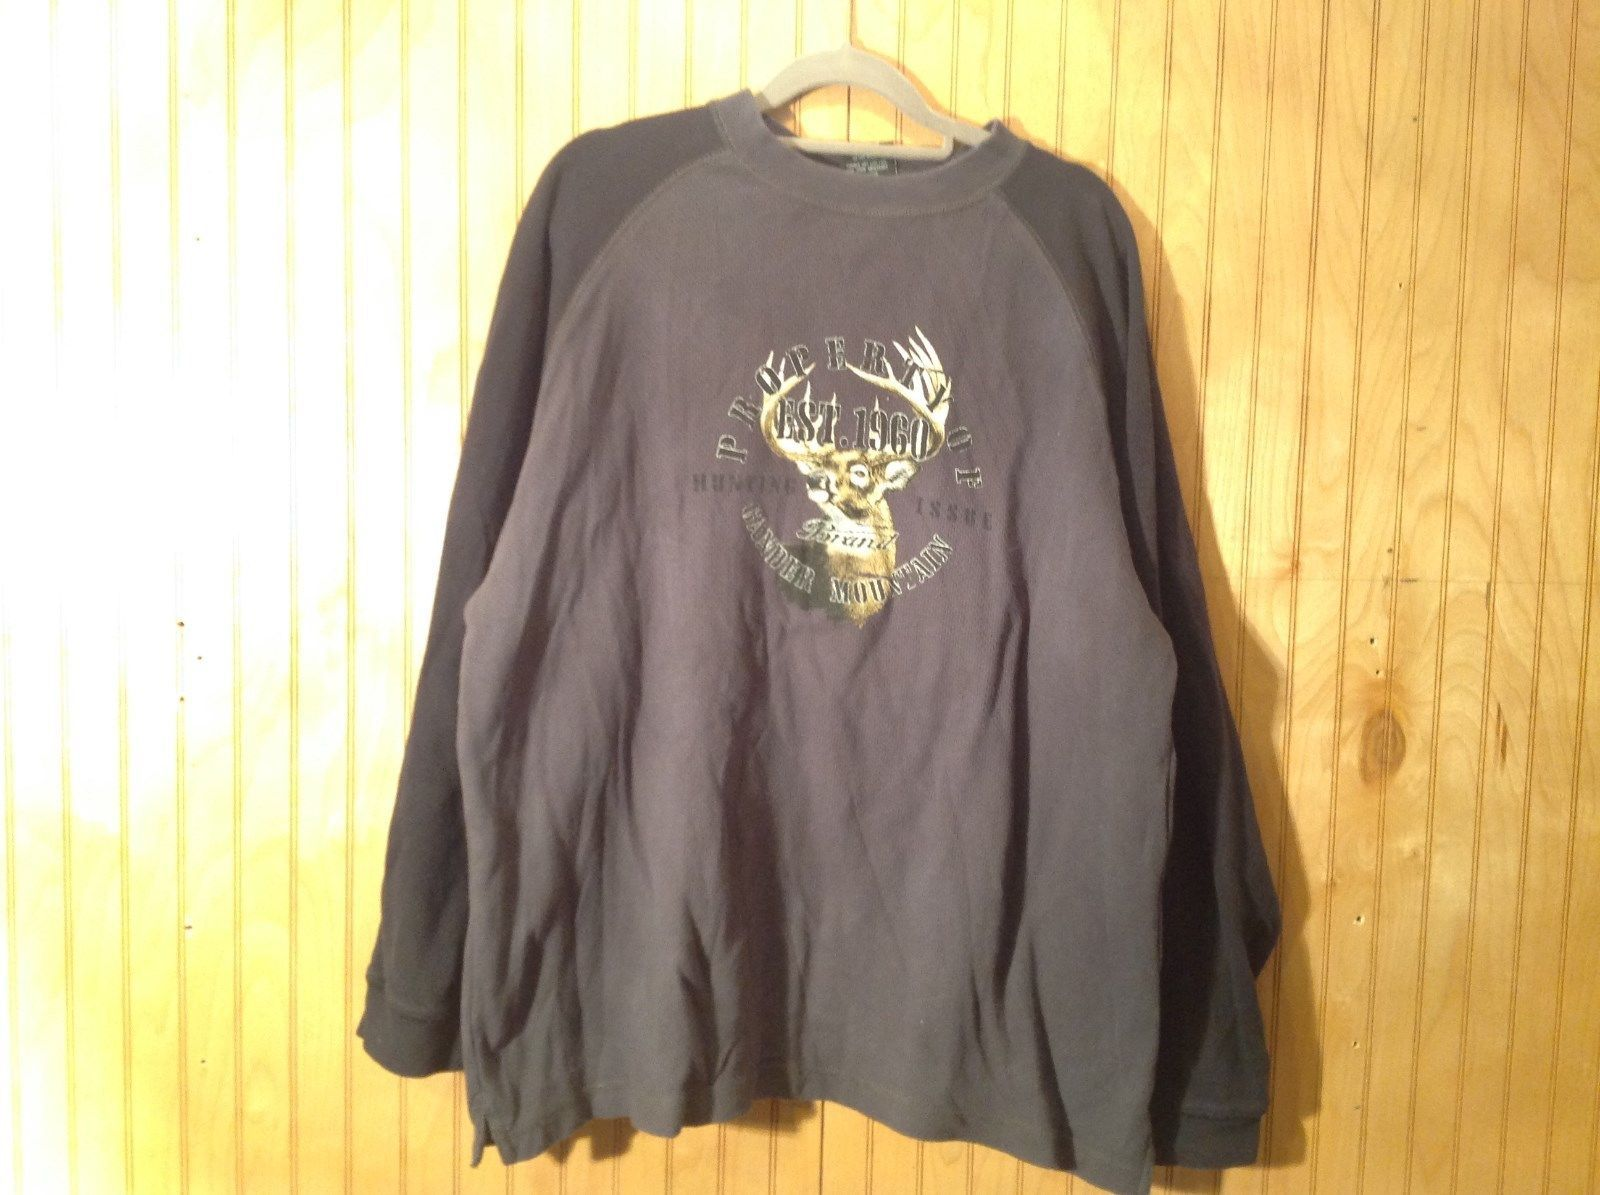 Two Color Gray Long Sleeve Graphic Shirt Property of Gander Mountain Size XL